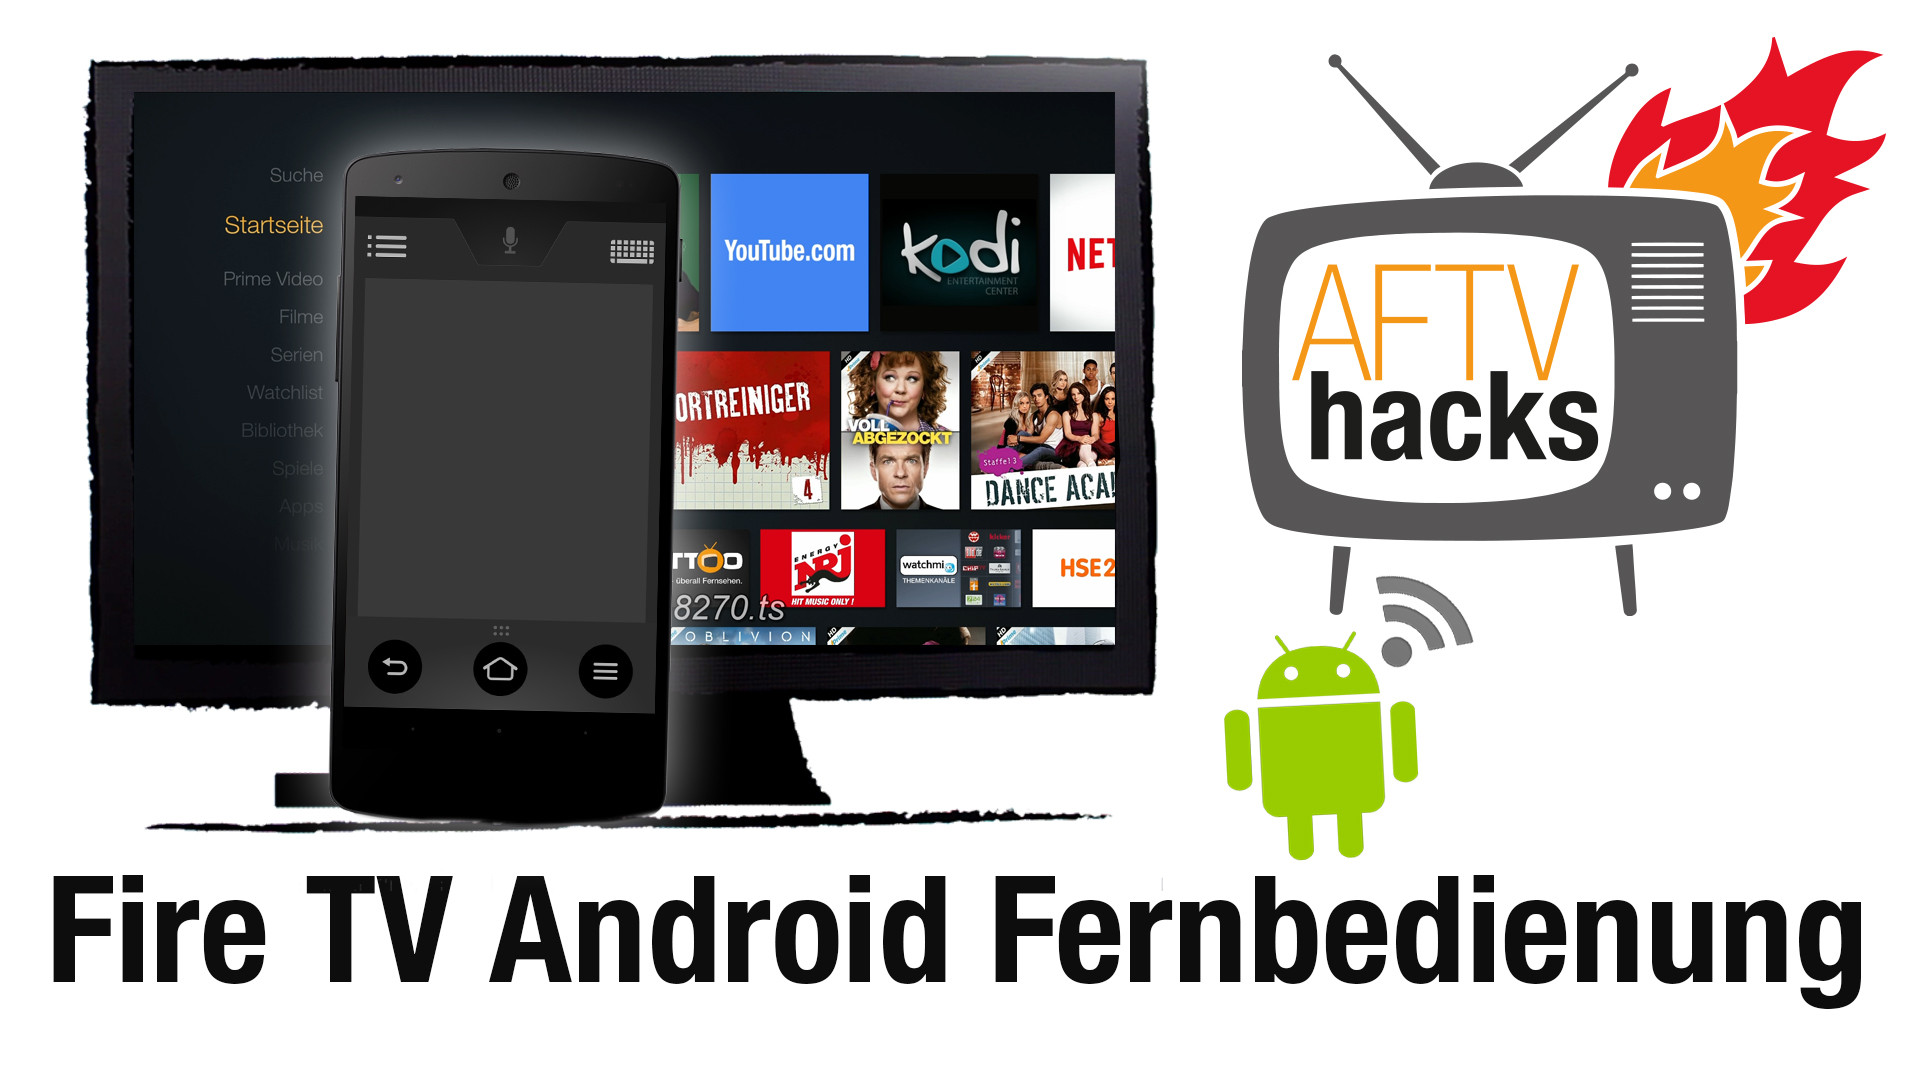 Amazon Fire TV Fernbedienung für Android